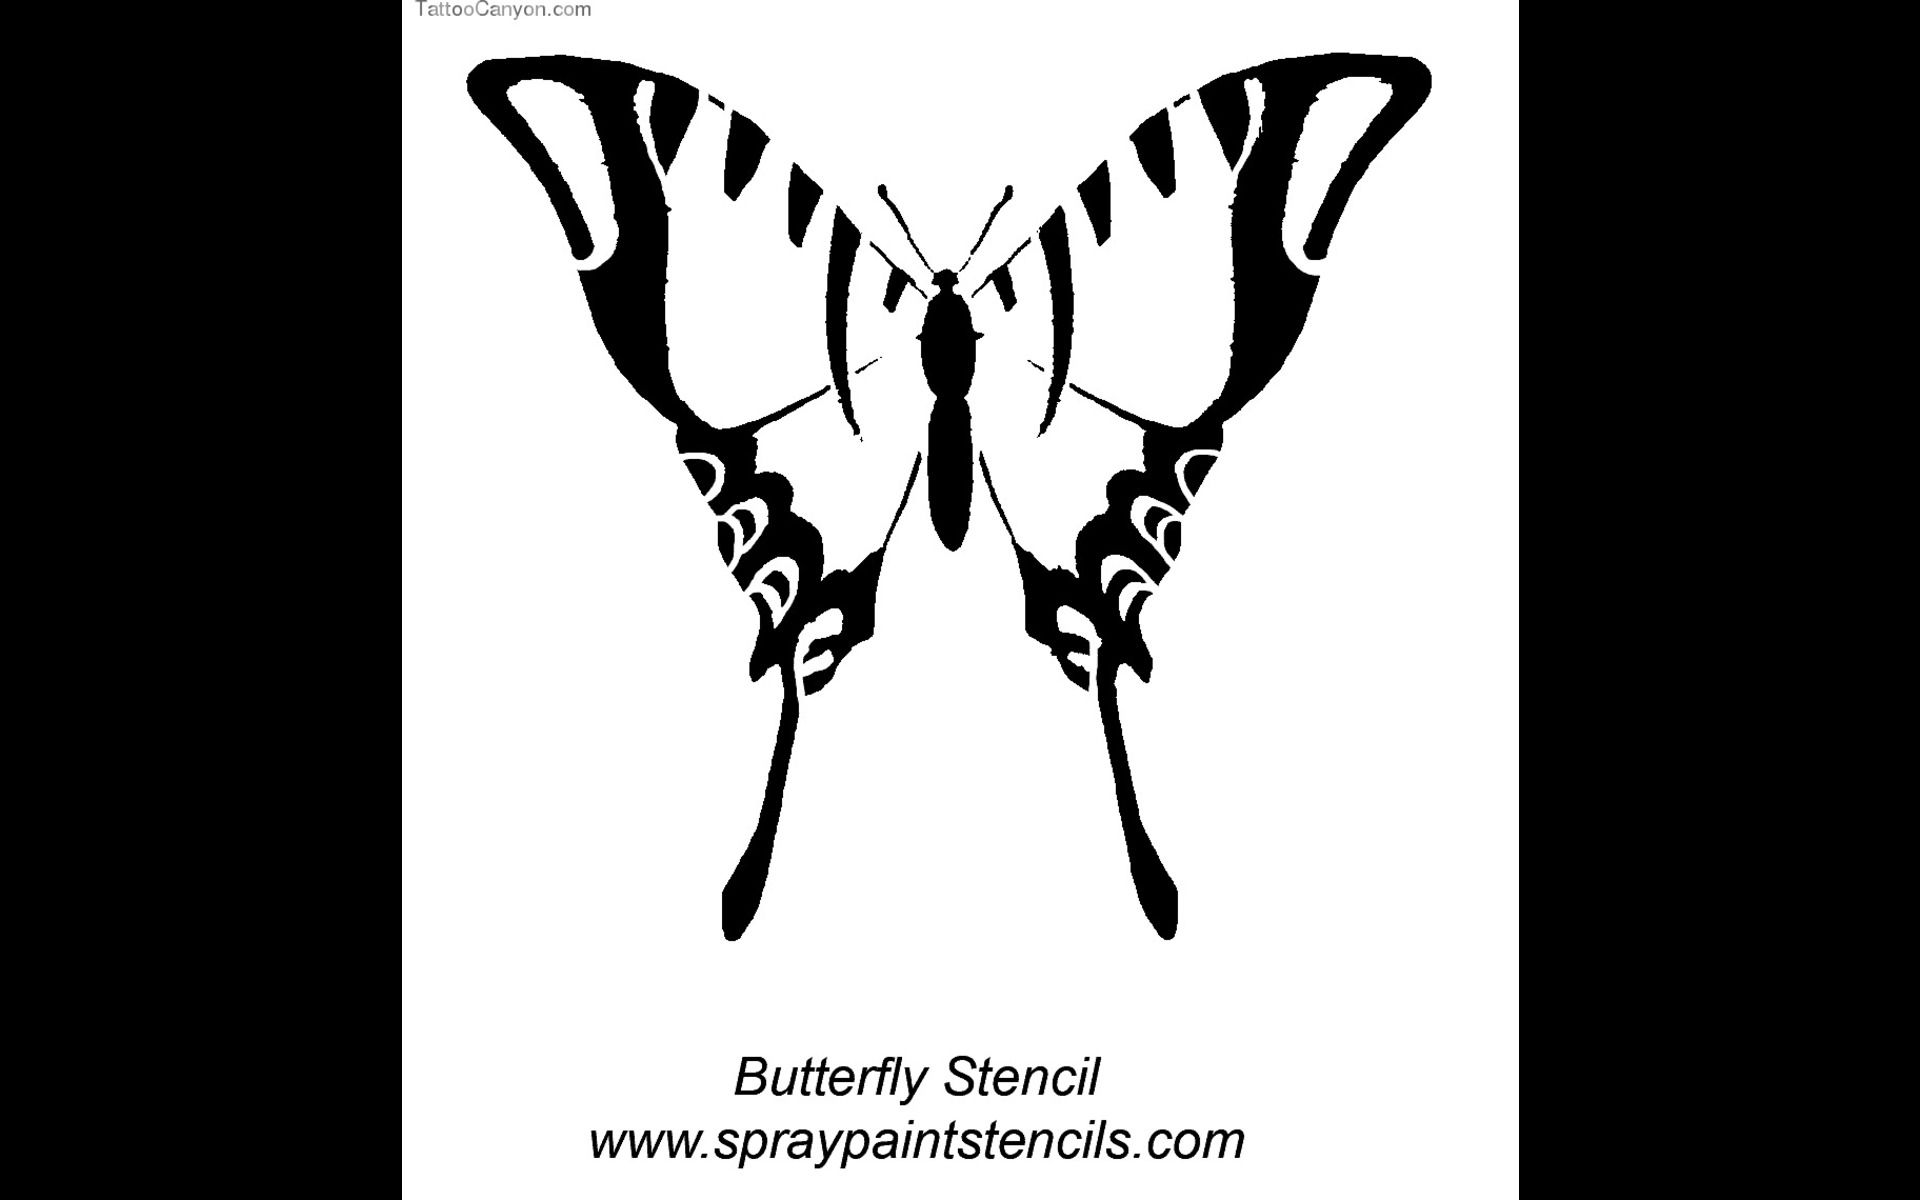 5422 butterfly outline tattoo free download 24660 tattoo design